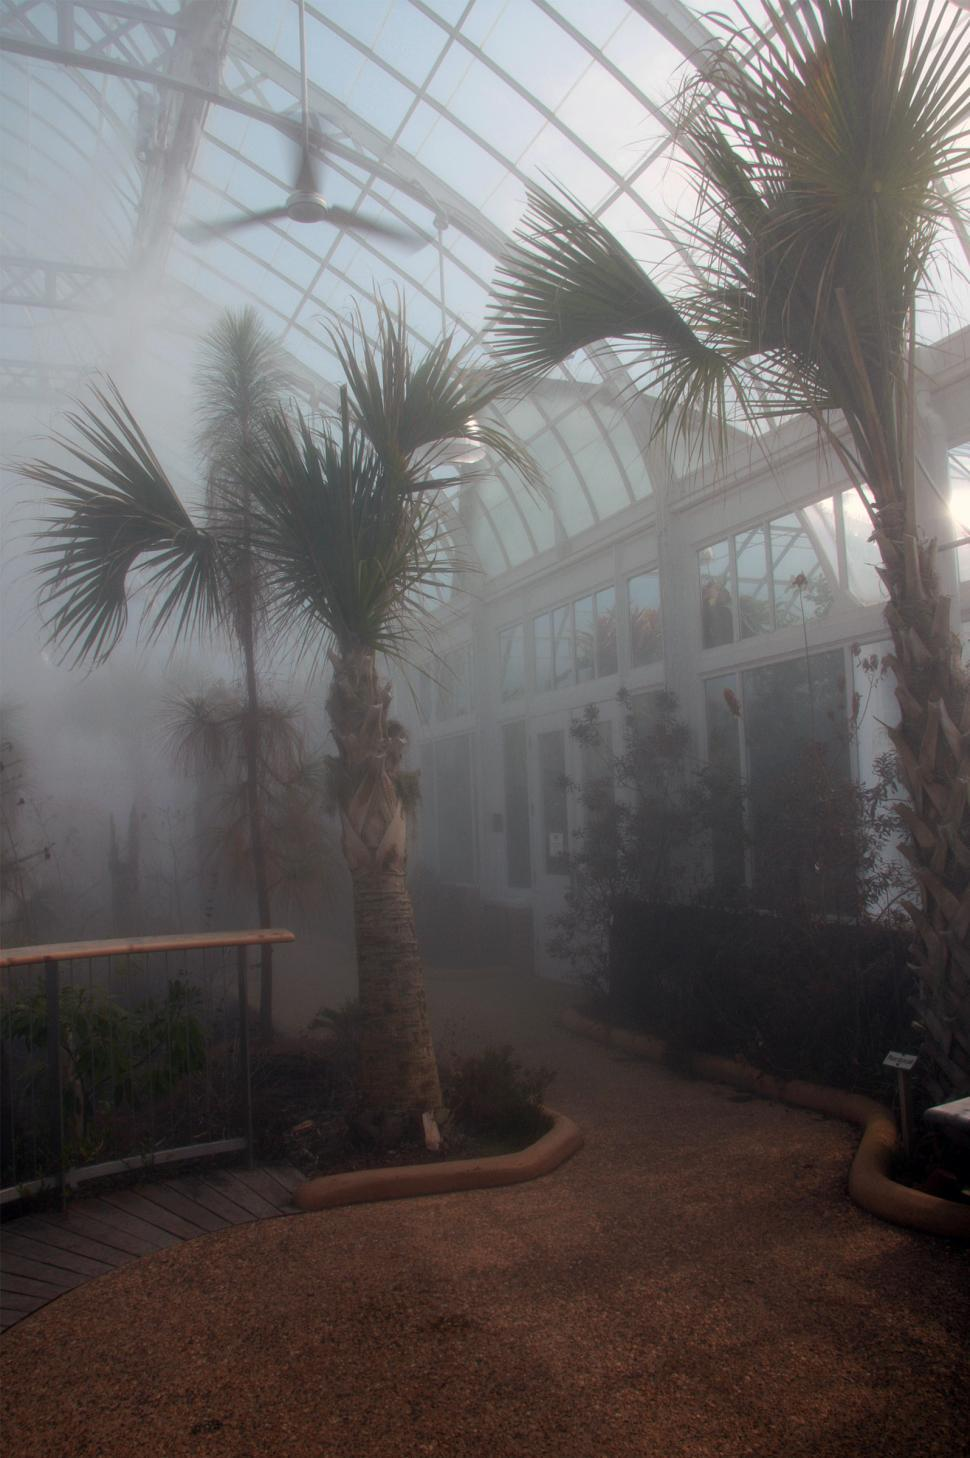 Download Free Stock Photo of Greenhouse Misting